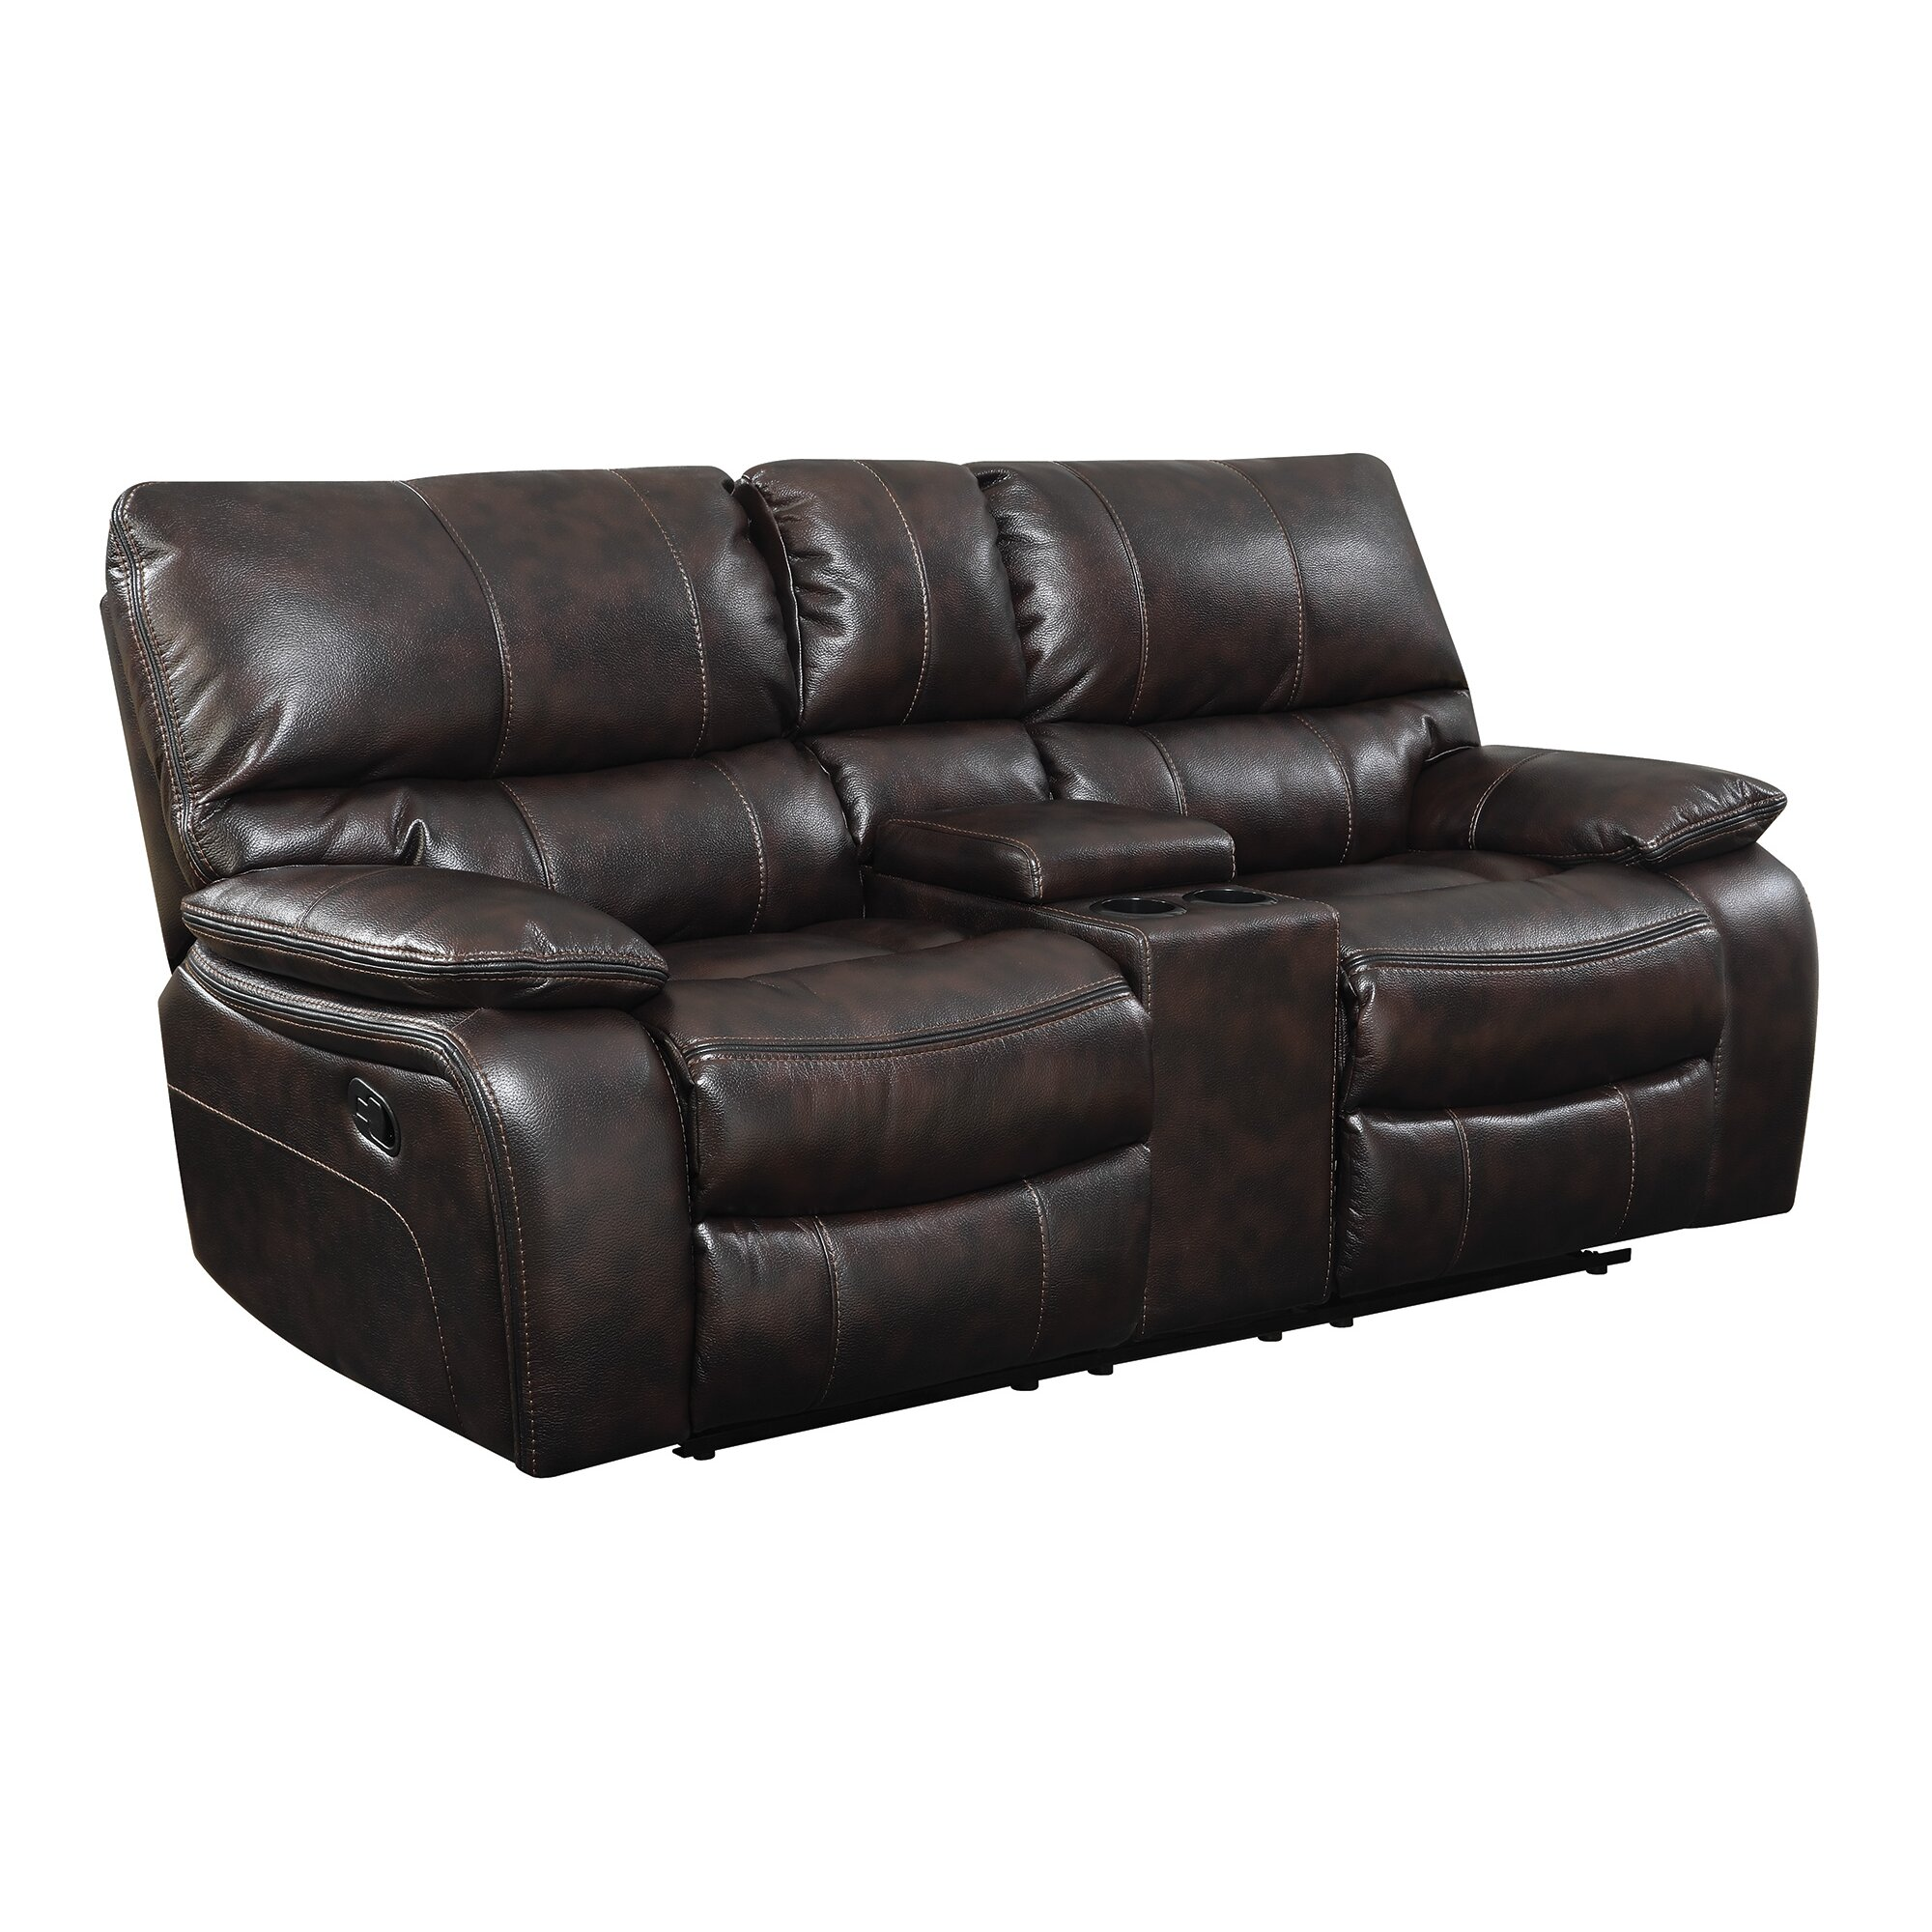 Wildon home willemse motion leather reclining loveseat wayfair Leather reclining loveseat